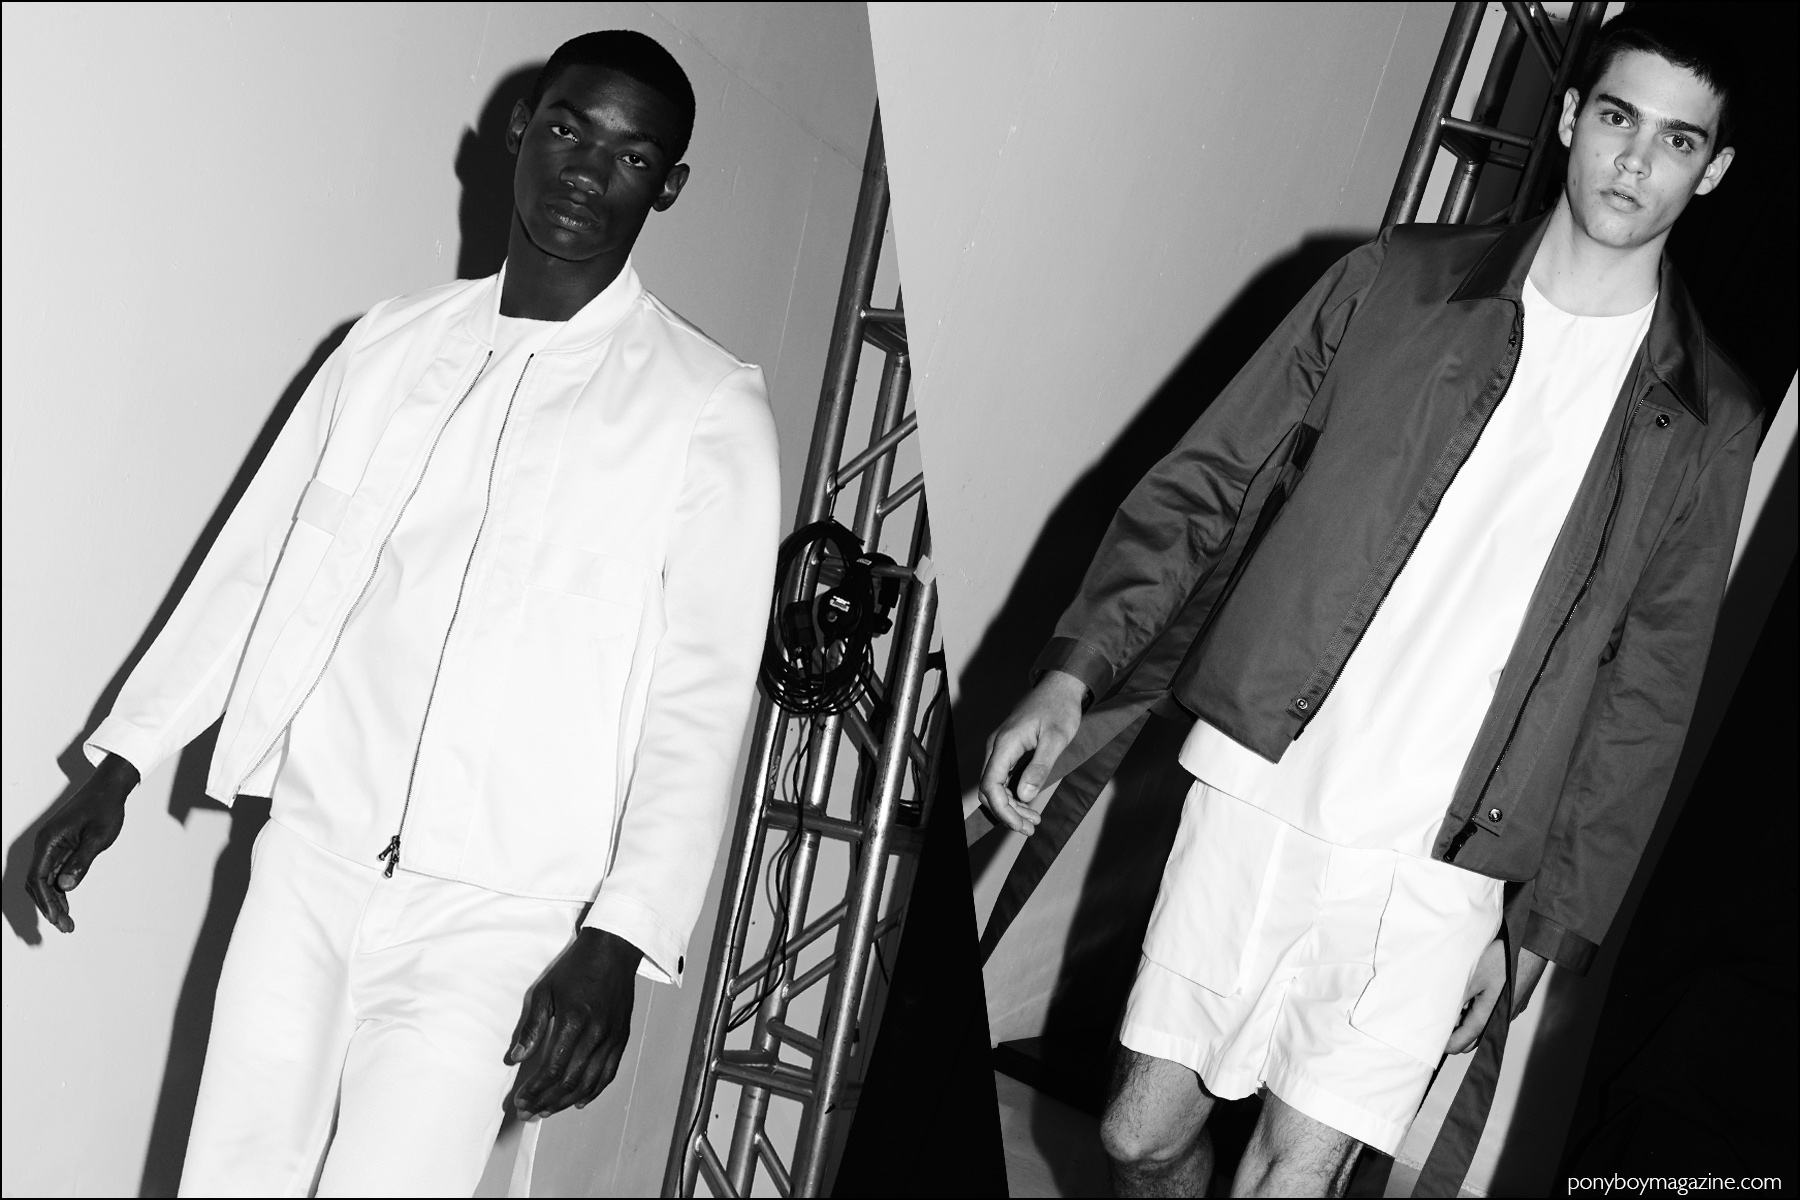 Models Valentine Rontez and Federico Spinas photographed exciting the runway at Carlos Campos Spring/Summer 2017 menswear show. Photography by Alexander Thompson for Ponyboy magazine NY.